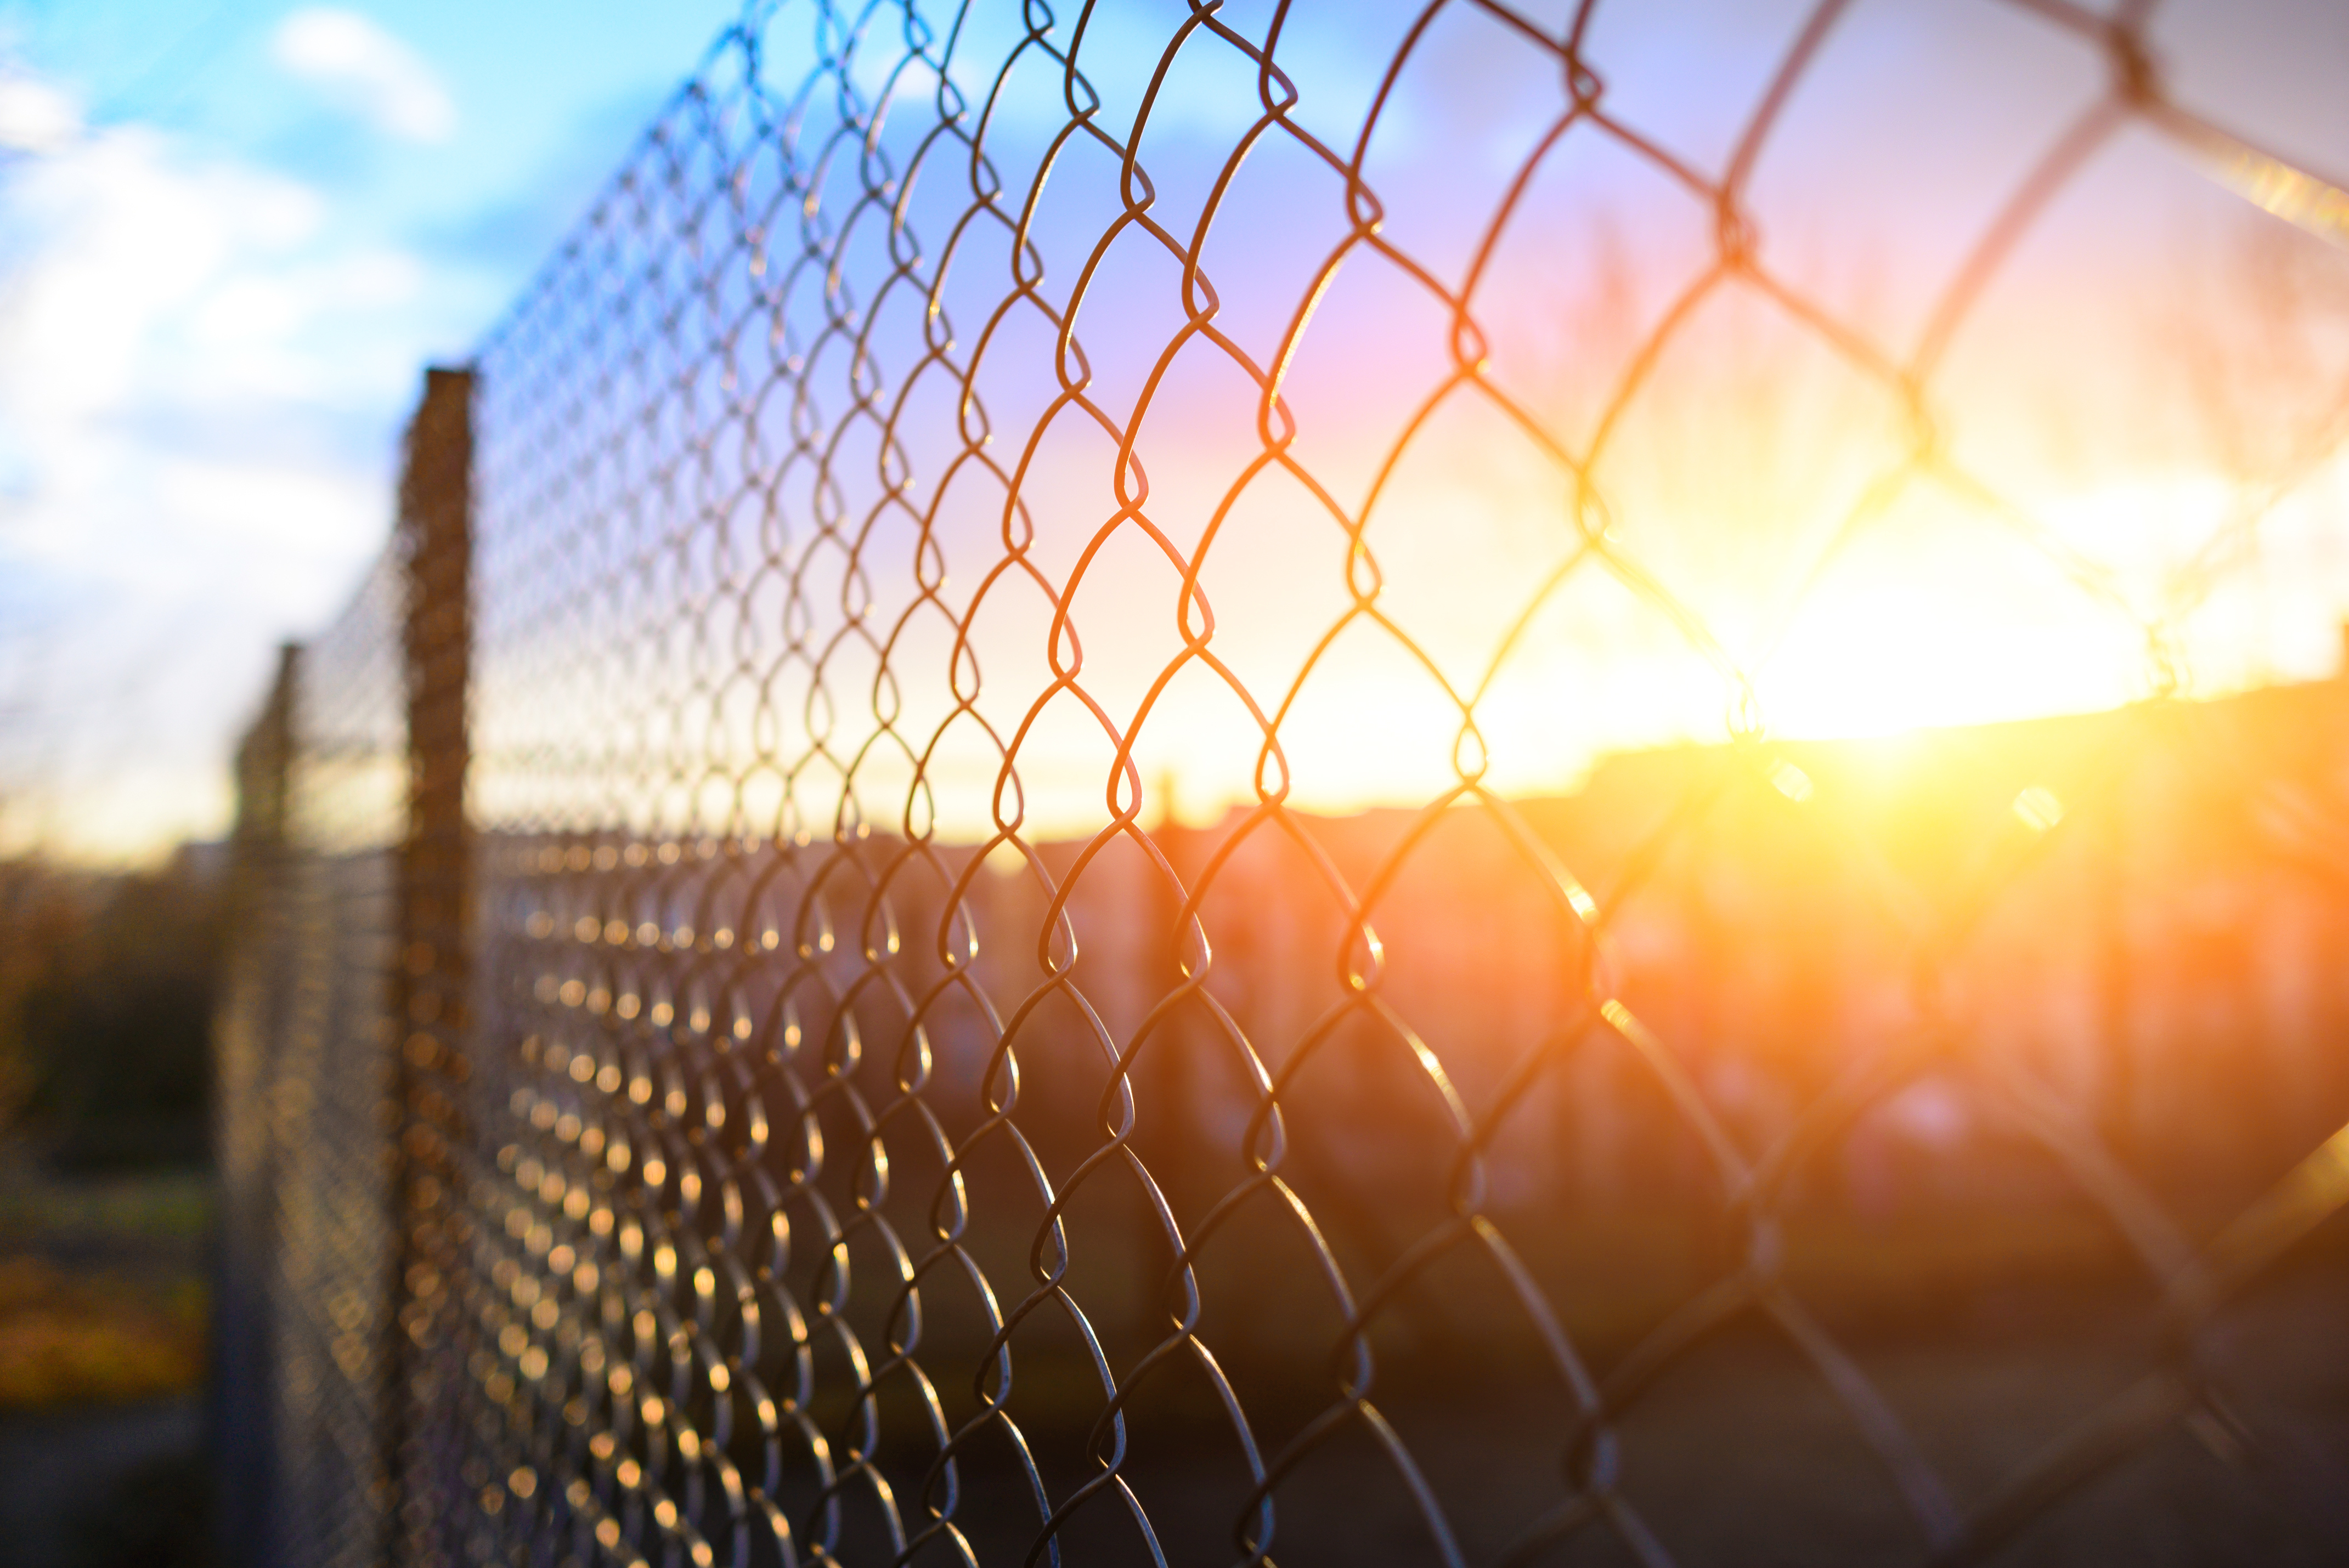 How to Extend the Height of a Chain-Link Fence | Home Guides